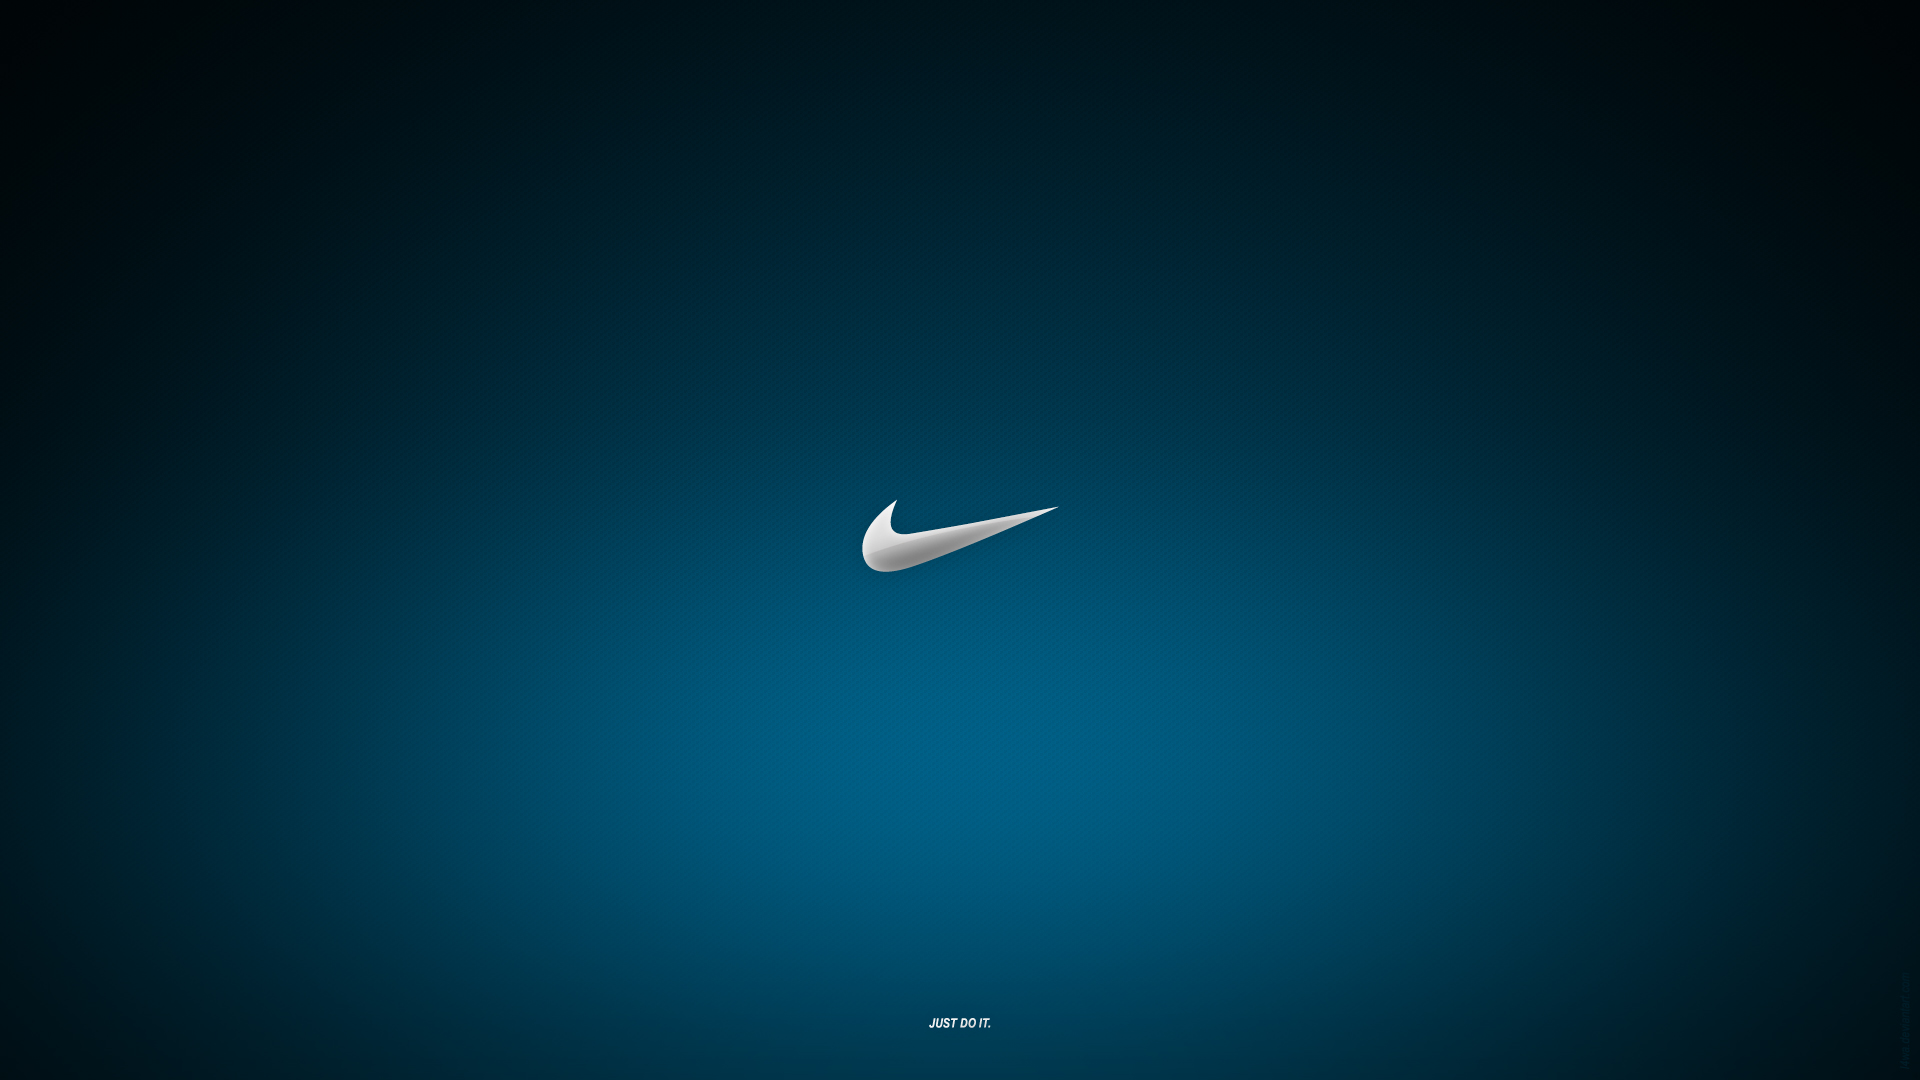 nike wallpaper hd 8154